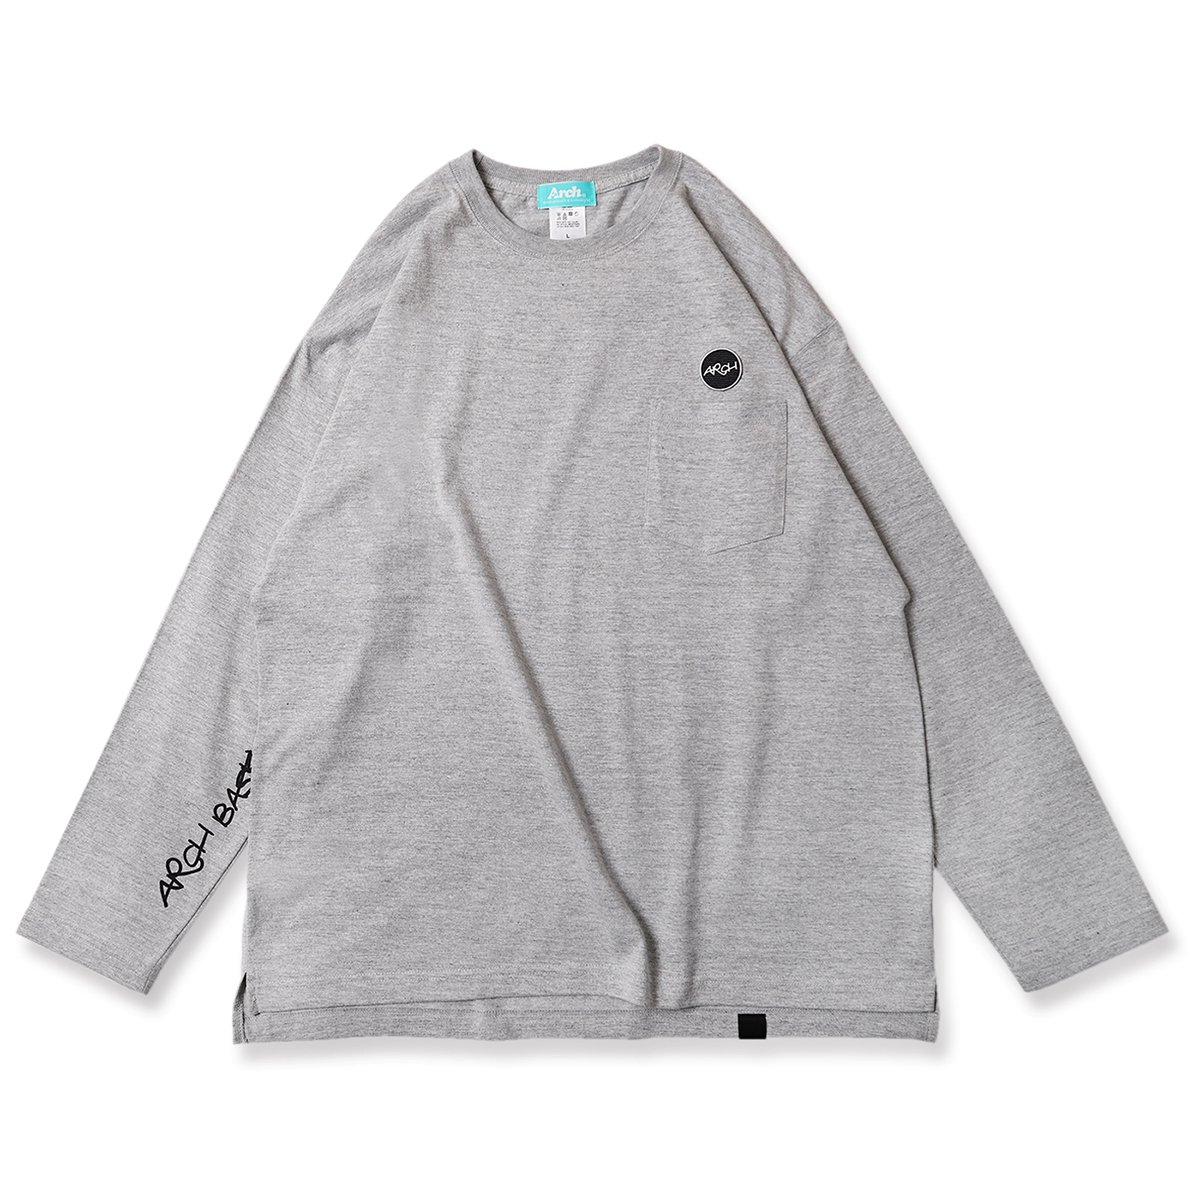 patched pocket L/S tee【gray】